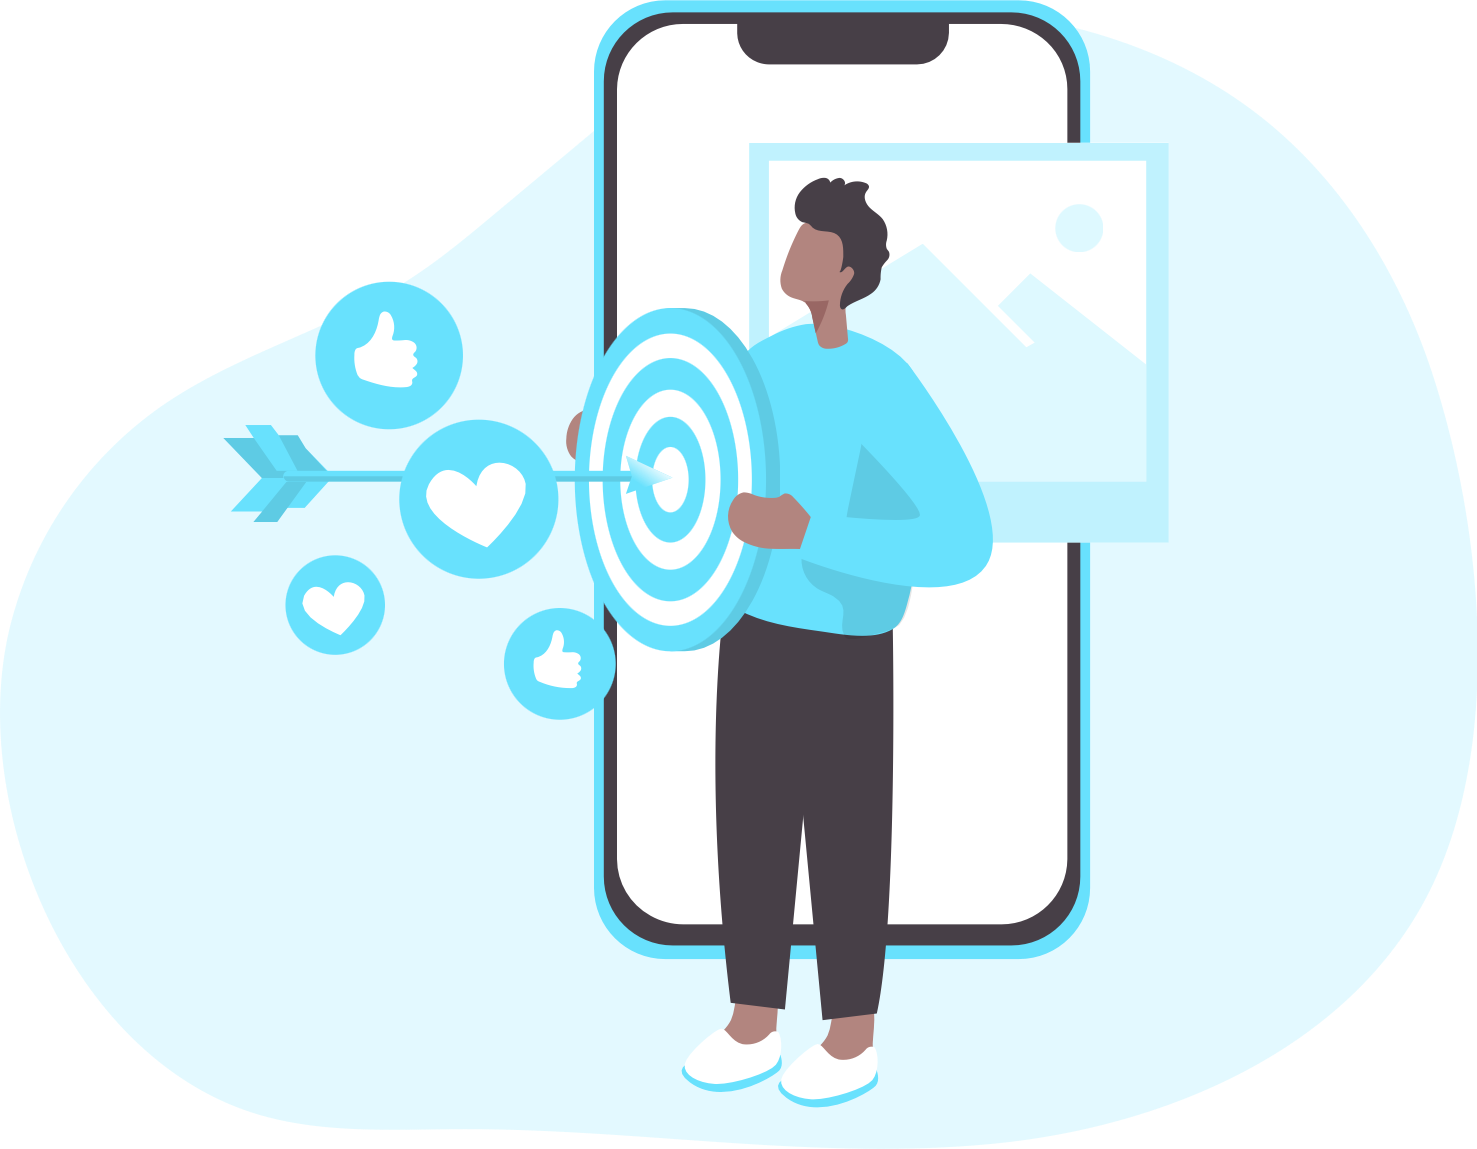 man-holding-a-board-bullseye-arrow-with-likes-and-heart-icon.png